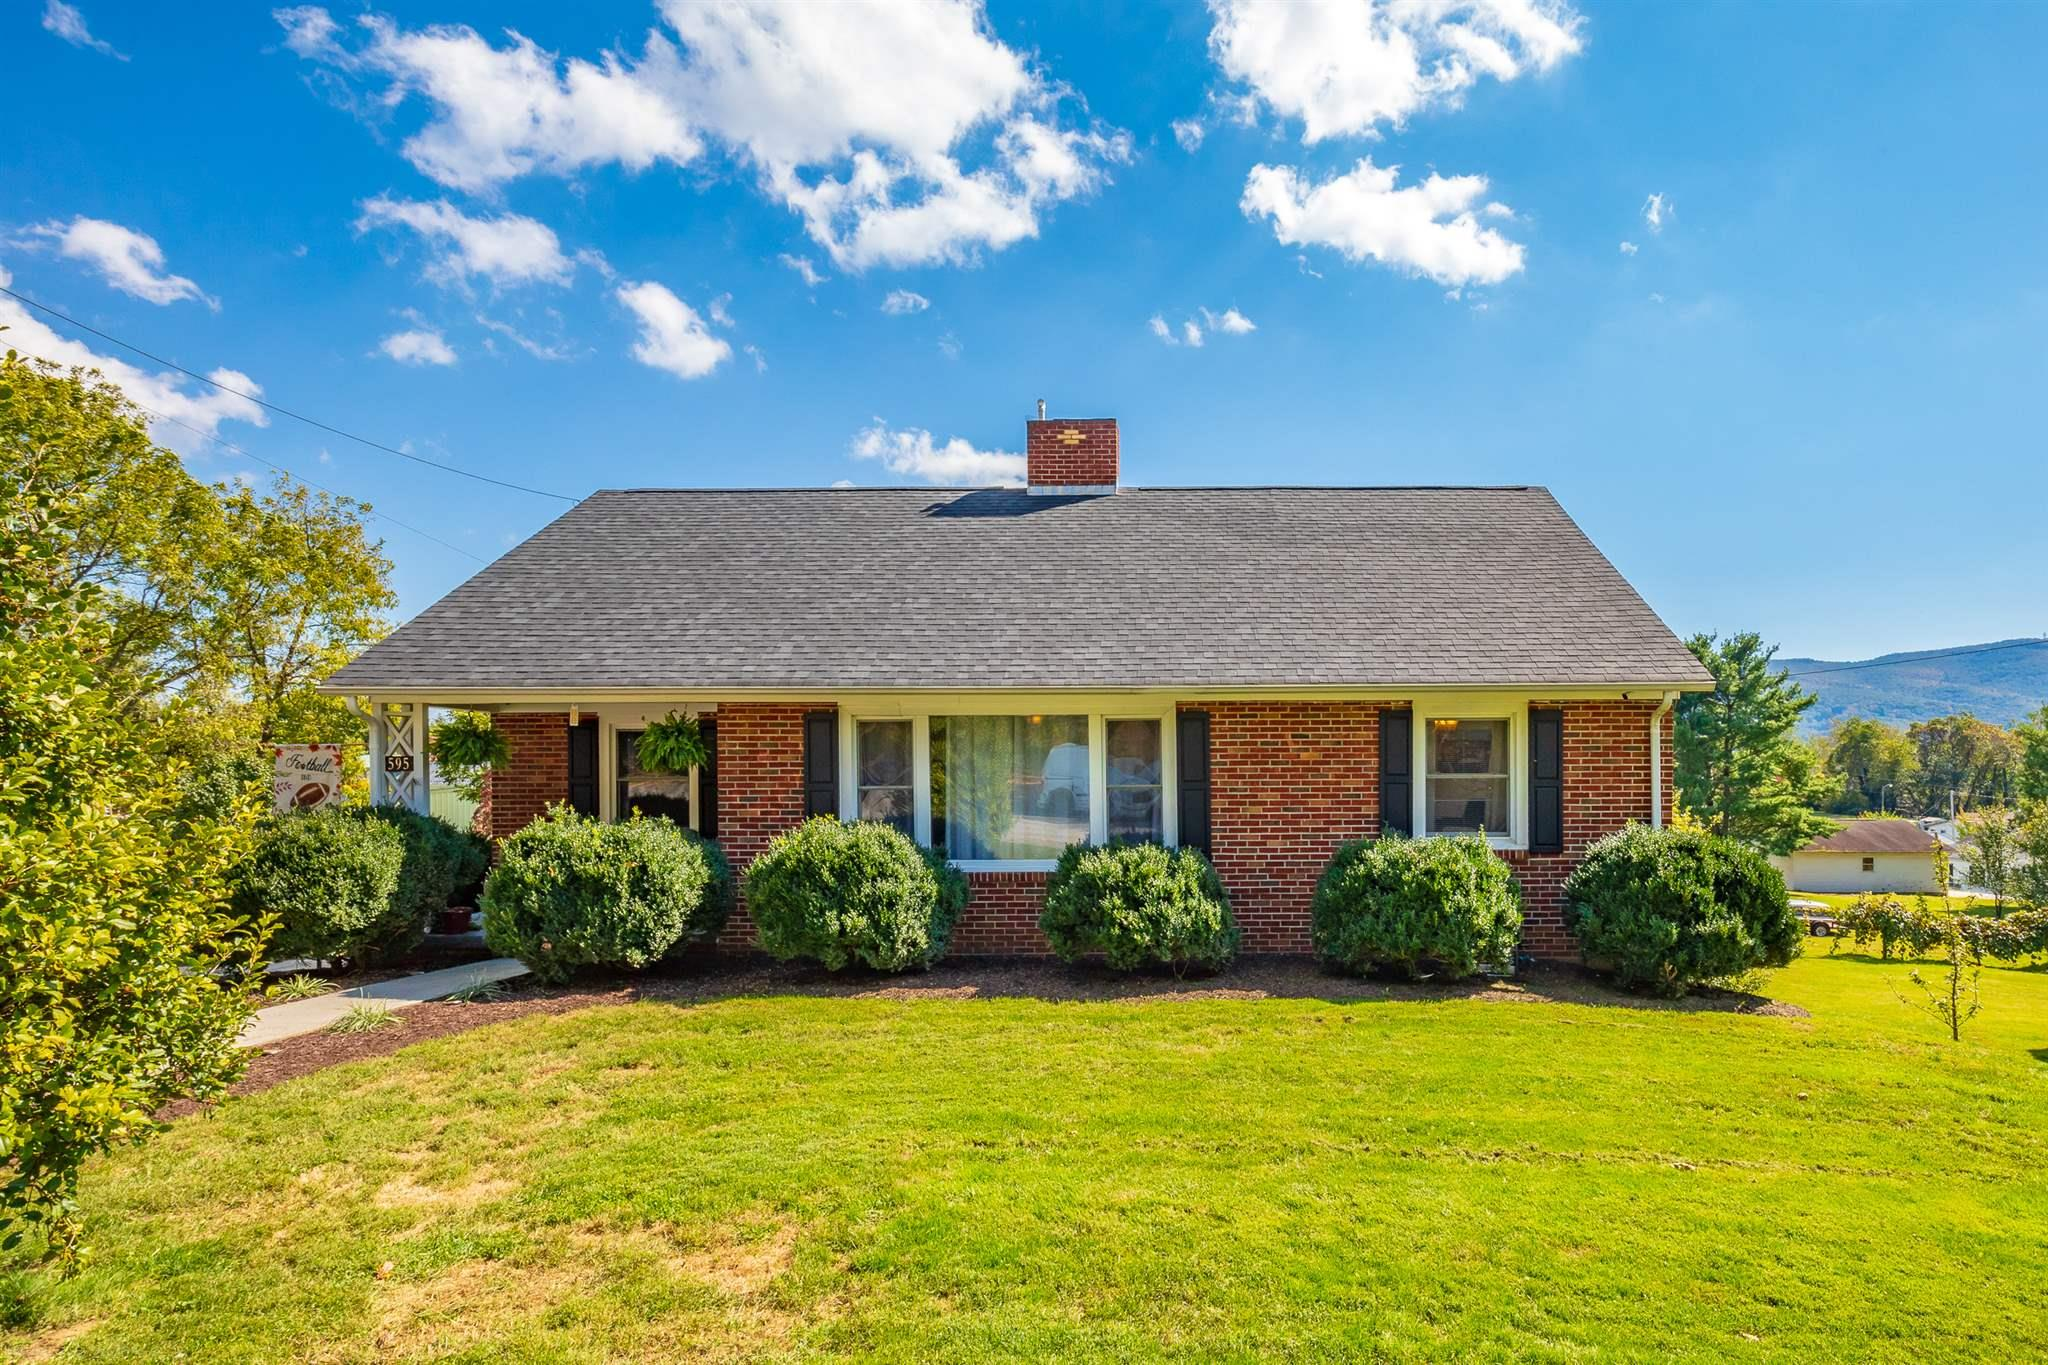 Beautiful brick ranch with excellent views located on an extra large corner lot. This home is loaded with updates in the past 3 years! All rooms with hardwood flooring have been refinished. Painted crown moulding and new fixtures in every room. Kitchen remodel featuring new drywall, tile flooring, cabinets, dishwasher, natural gas stove & built in microwave. Bathroom completely remodeled including sink, flooring, toilet and bathtub/shower. Other valuable improvements consist of an automatic garage door with opener, natural gas water heater, heating and cooling system/natural gas backup heat with a Nest thermostat control and natural gas logs upstairs. Outside..new shutters, professional landscaping, fresh paint on foundation, wired camera security system, home satellite dish Directv ready, and a steel door to basement area. Plus, completely new plumbing throughout entire house. This 3 bedroom 1 bath home is move in ready!